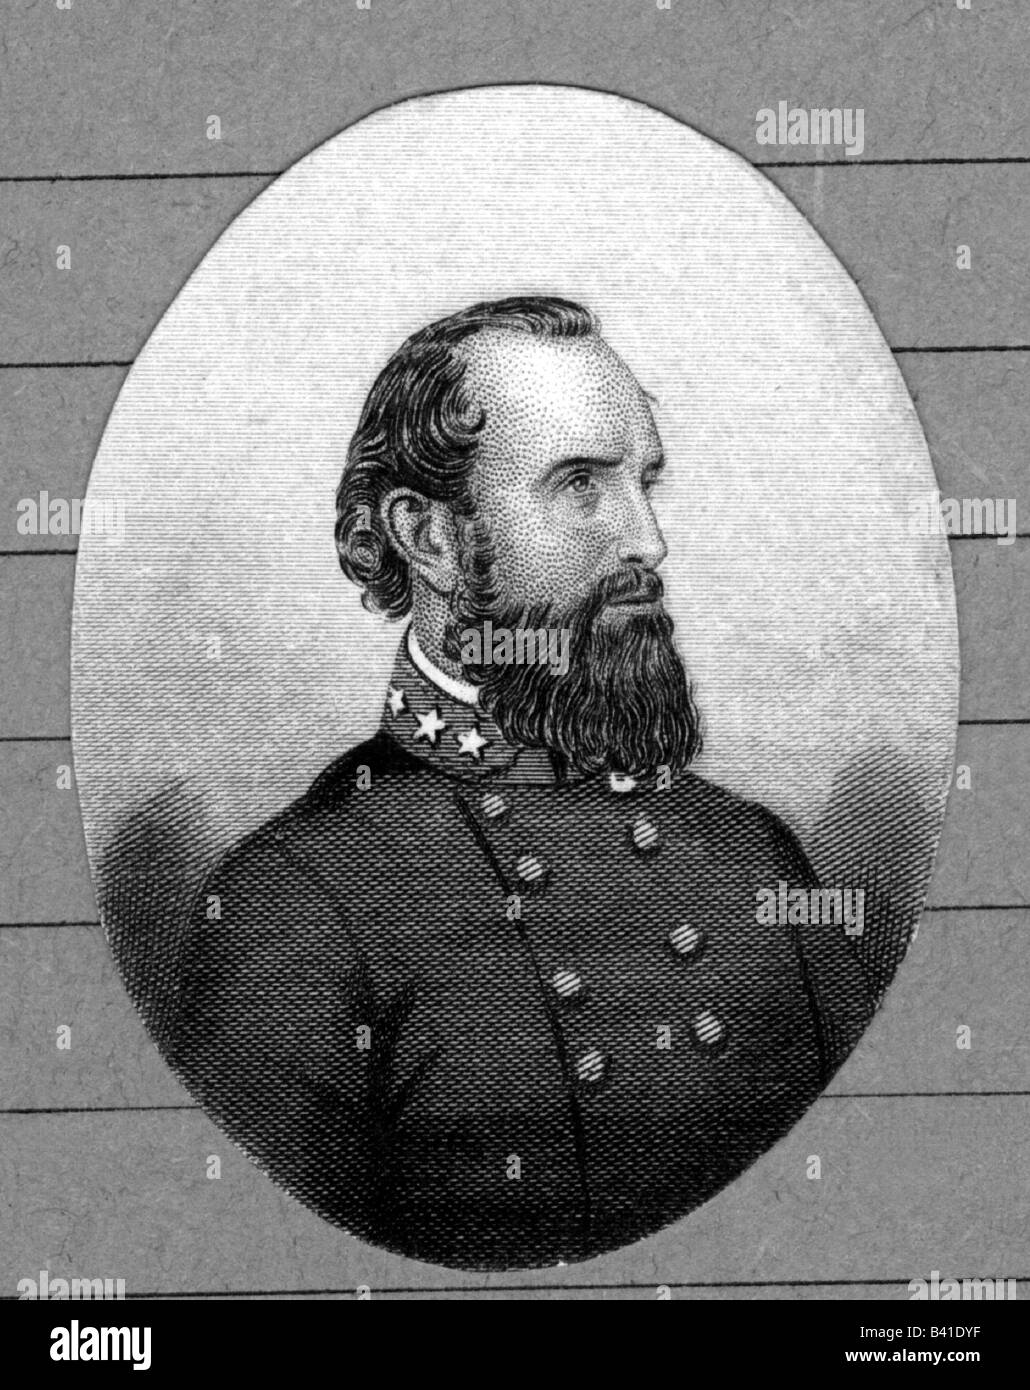 Jackson, Thomas 'Stonewall', 21.1.1824 - 10.5.1863, American General, portrait, steel engraving, 19th century, - Stock Image